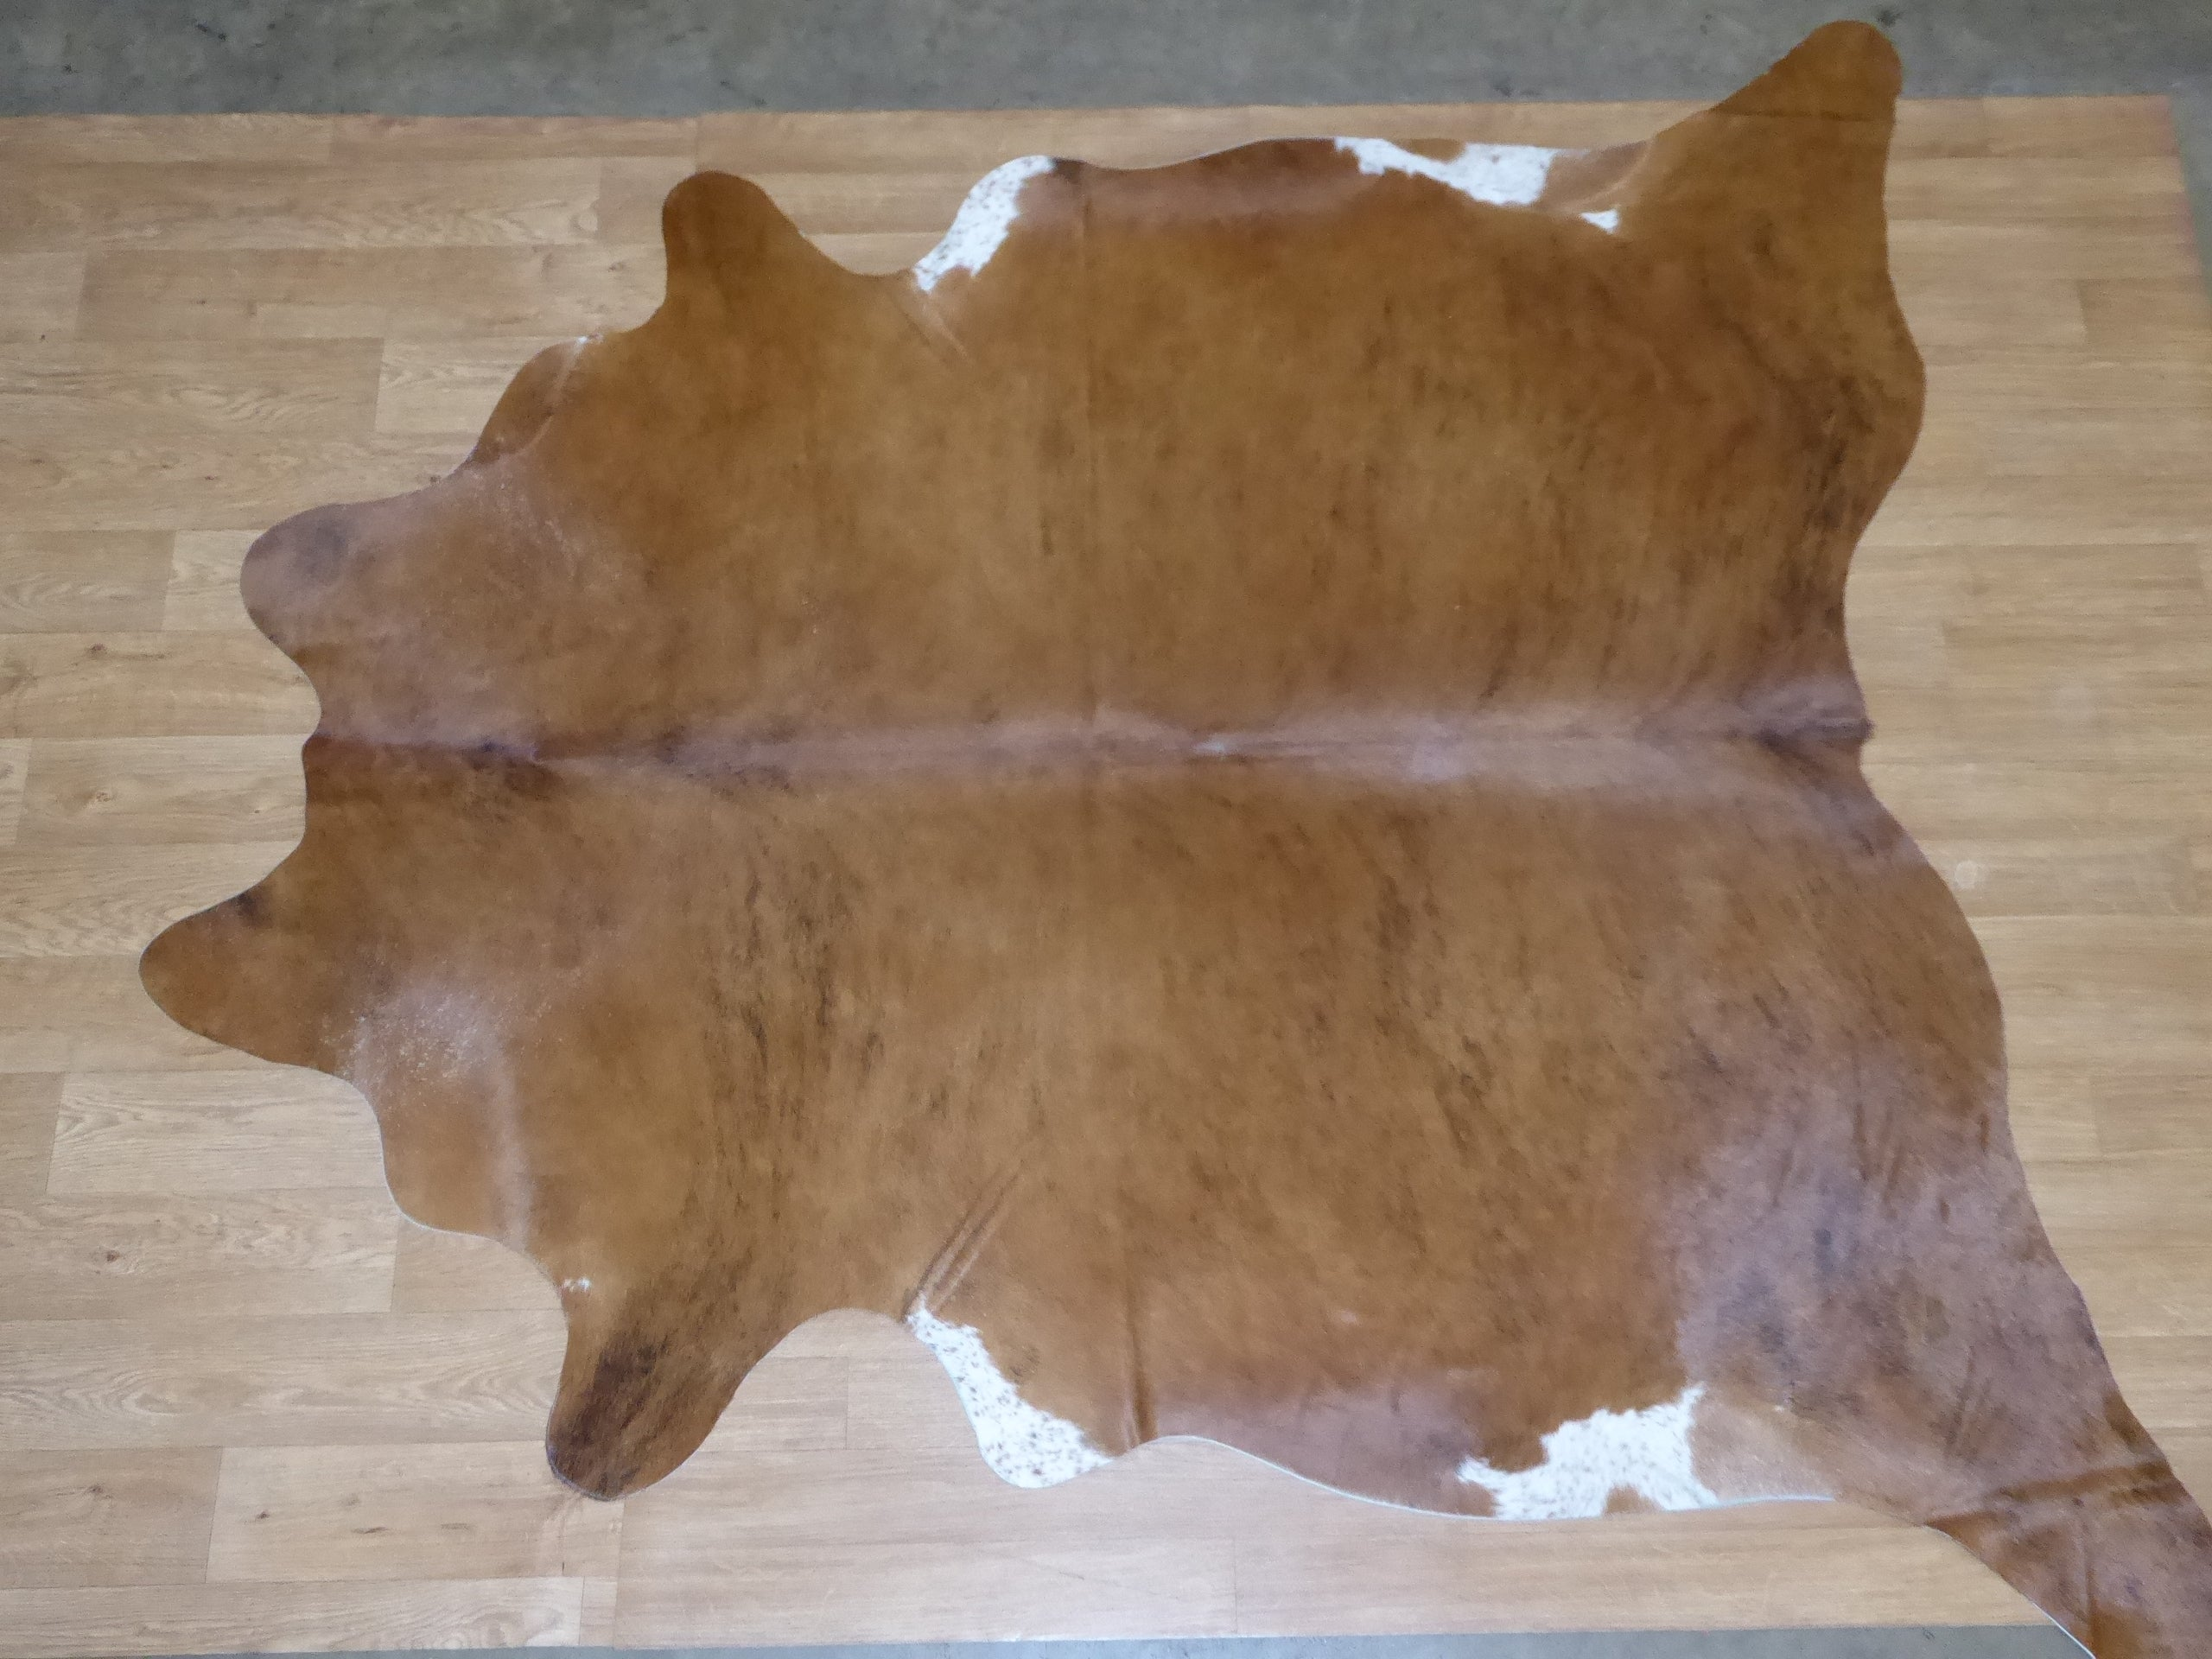 Natural Hair On Cow Hide : This Hide Is Perfect For Wall Hanging, Leather Rugs, Leather Bags & Leather Accessories (pic code 1010988)